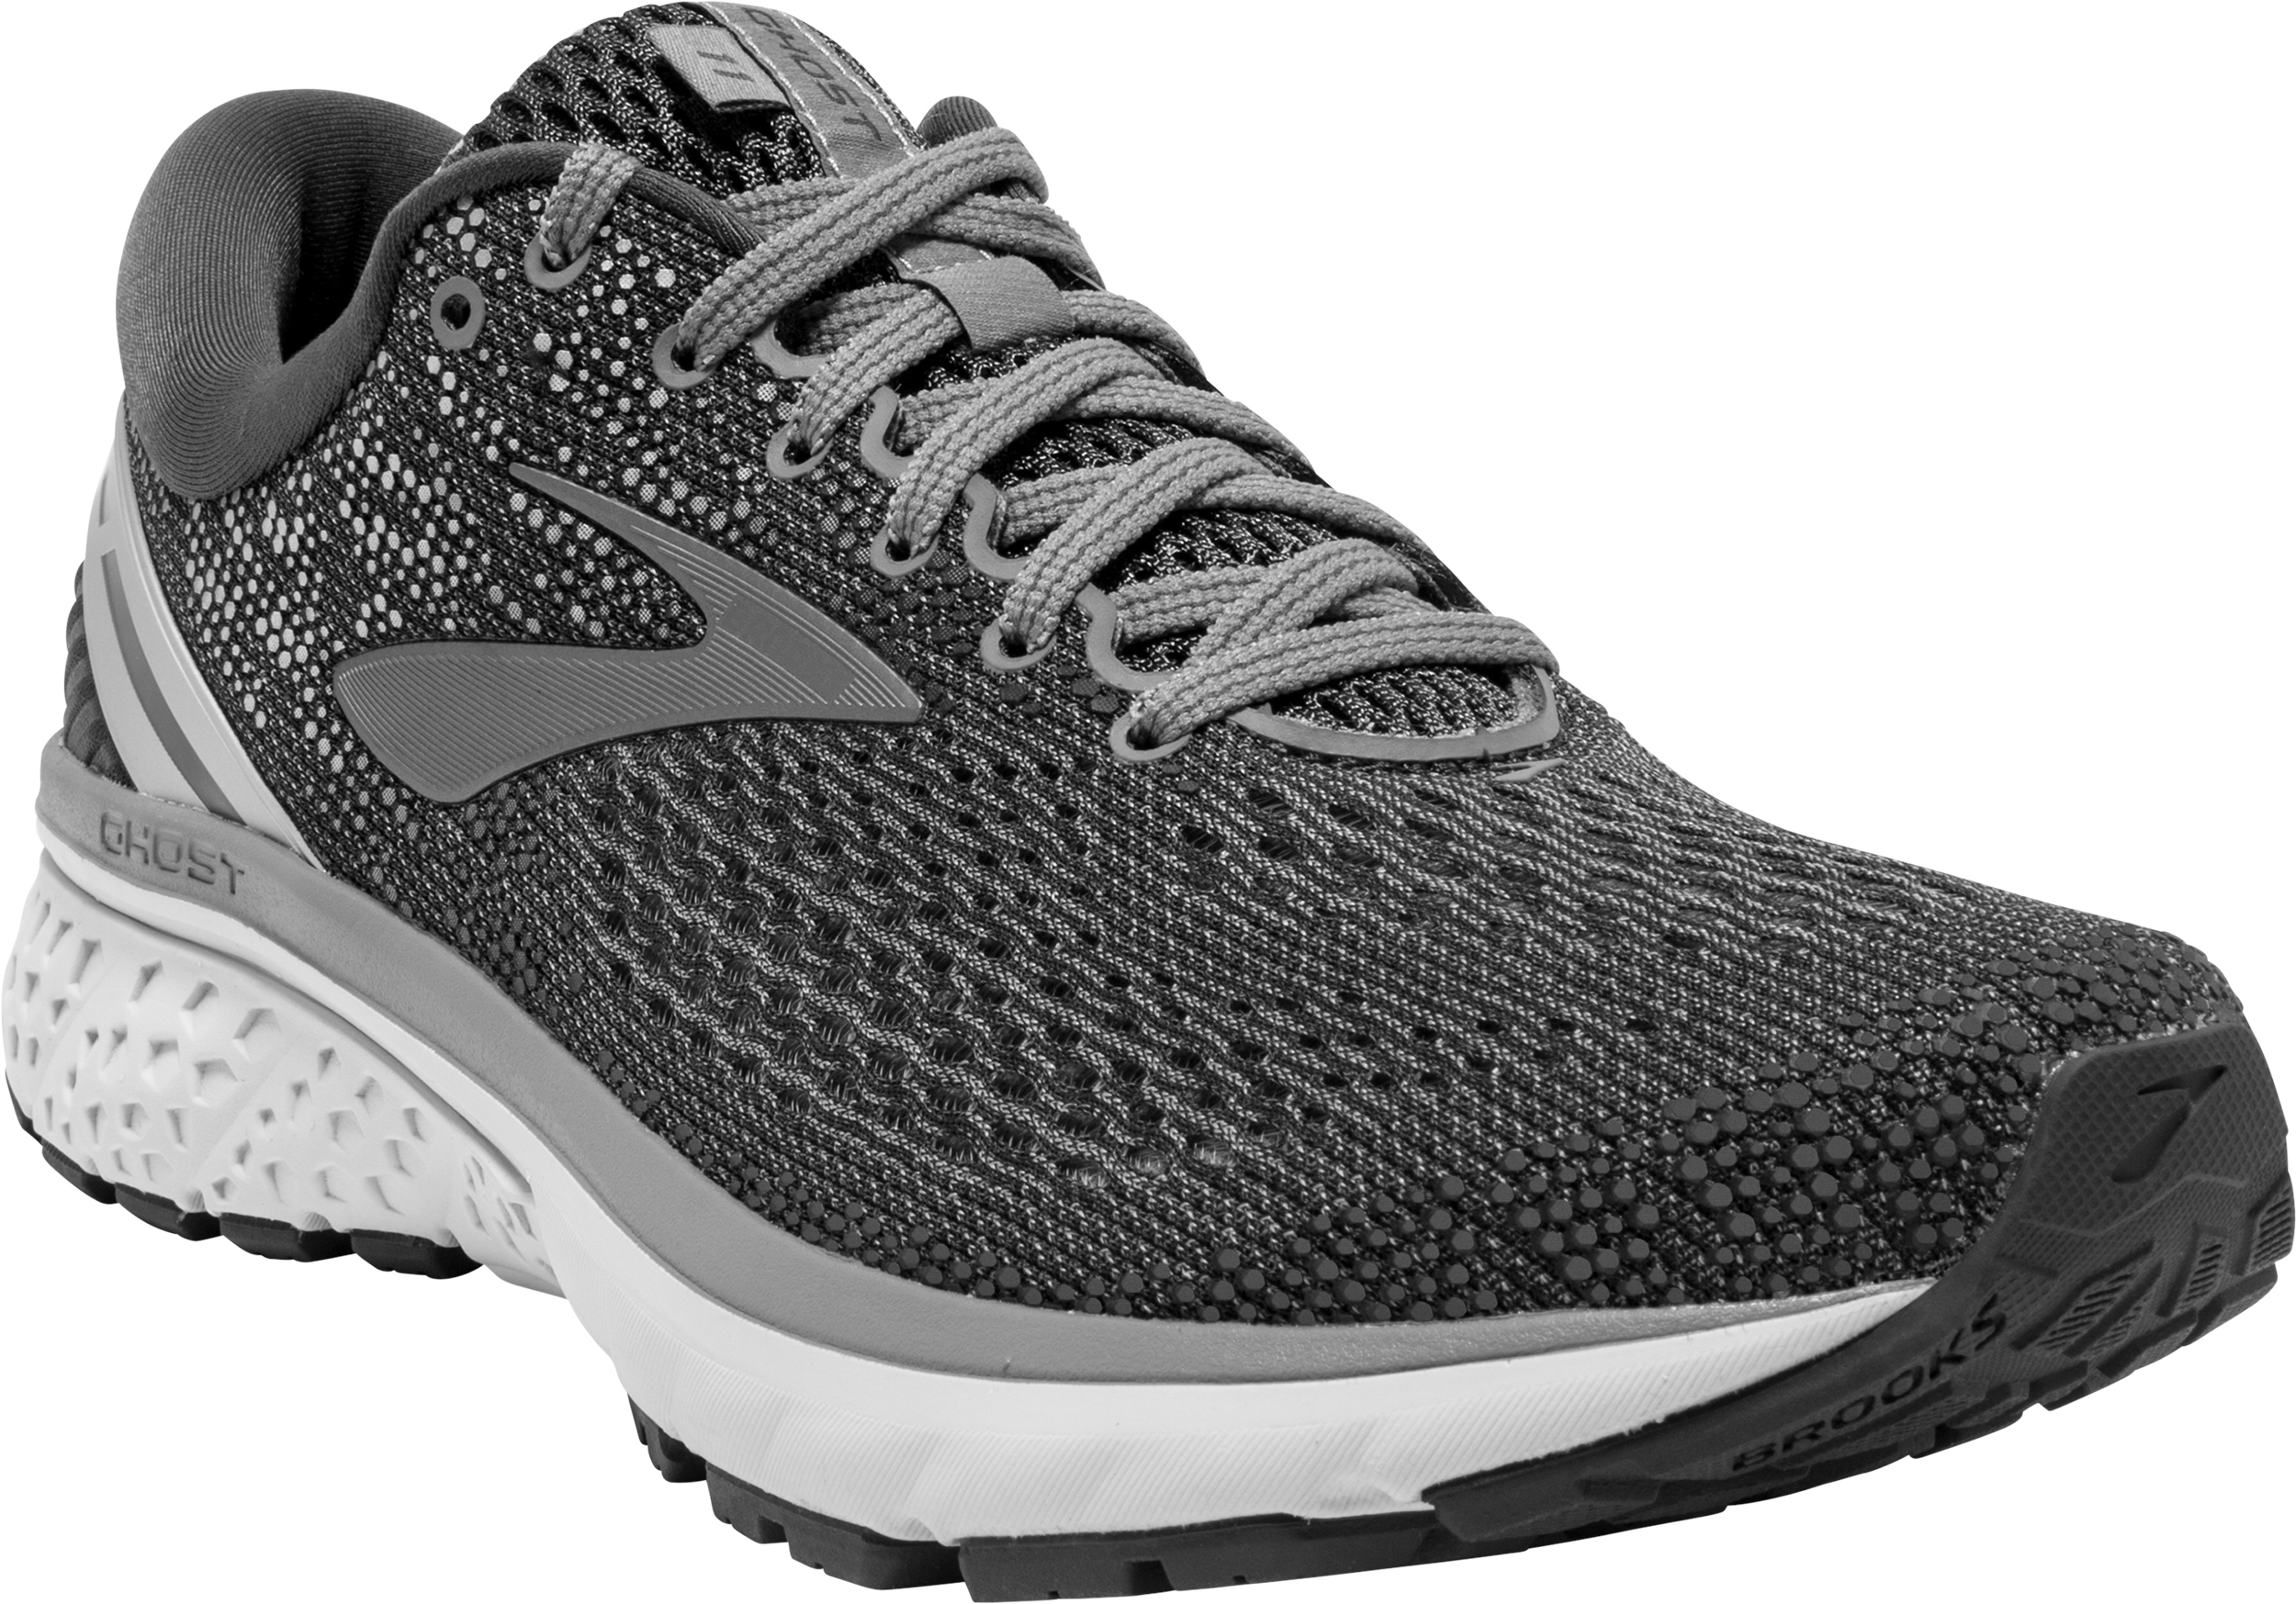 98d67b50cb Brooks Ghost 11 Road Running Shoes - Men's